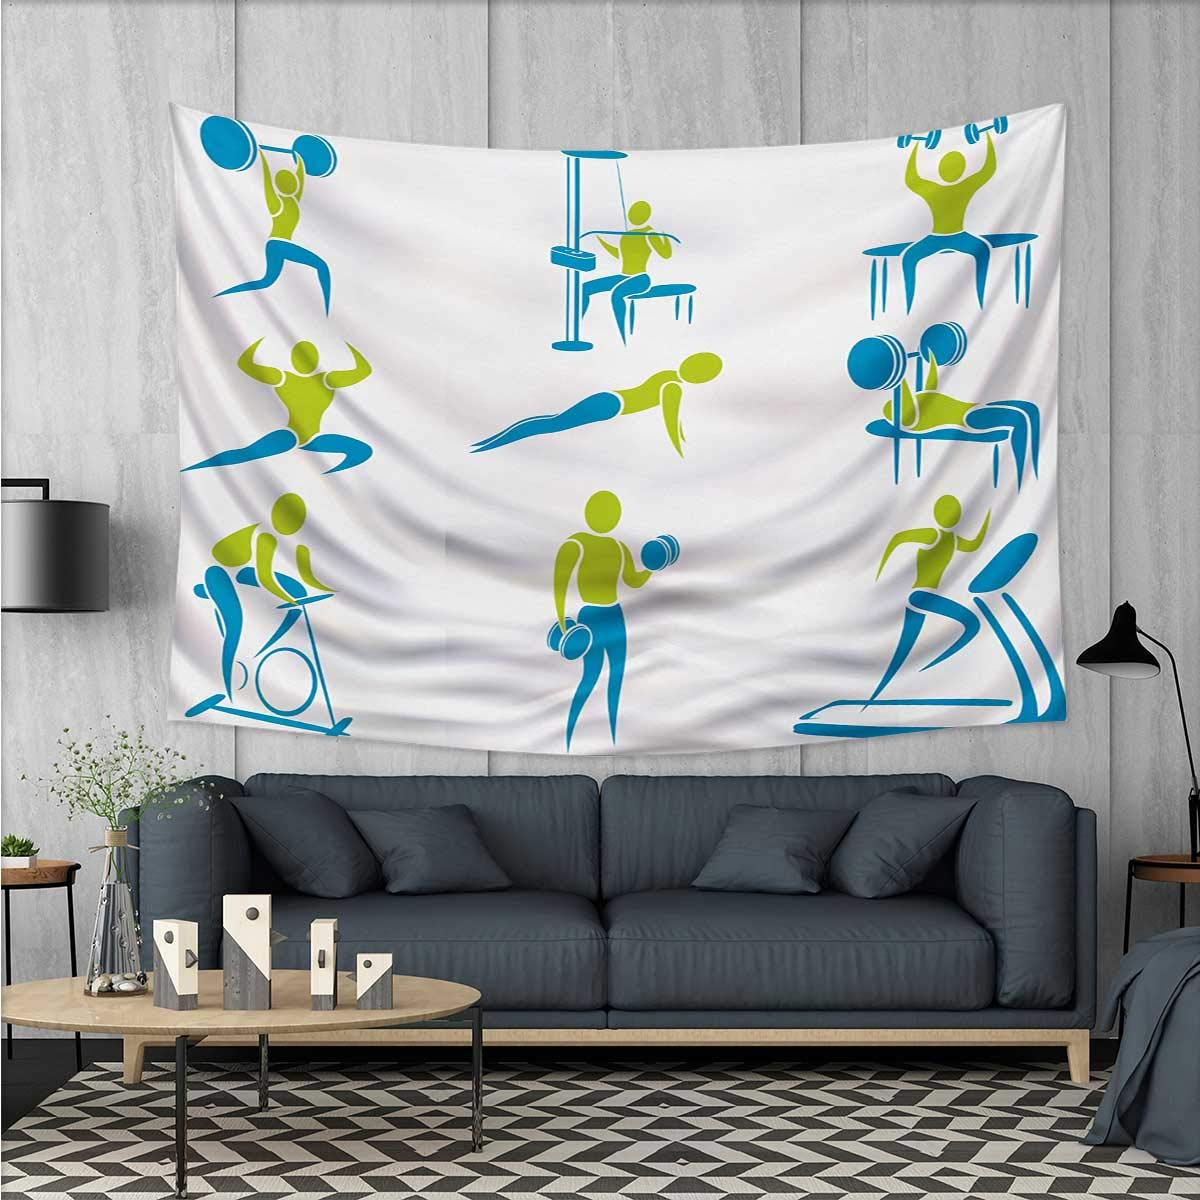 "Fitness Wall Tapestry Icons Showing Different Gym Activities Weightlifting Equipment Home Decorations for Living Room Bedroom 80""x60"" Sky Blue Apple Green White"